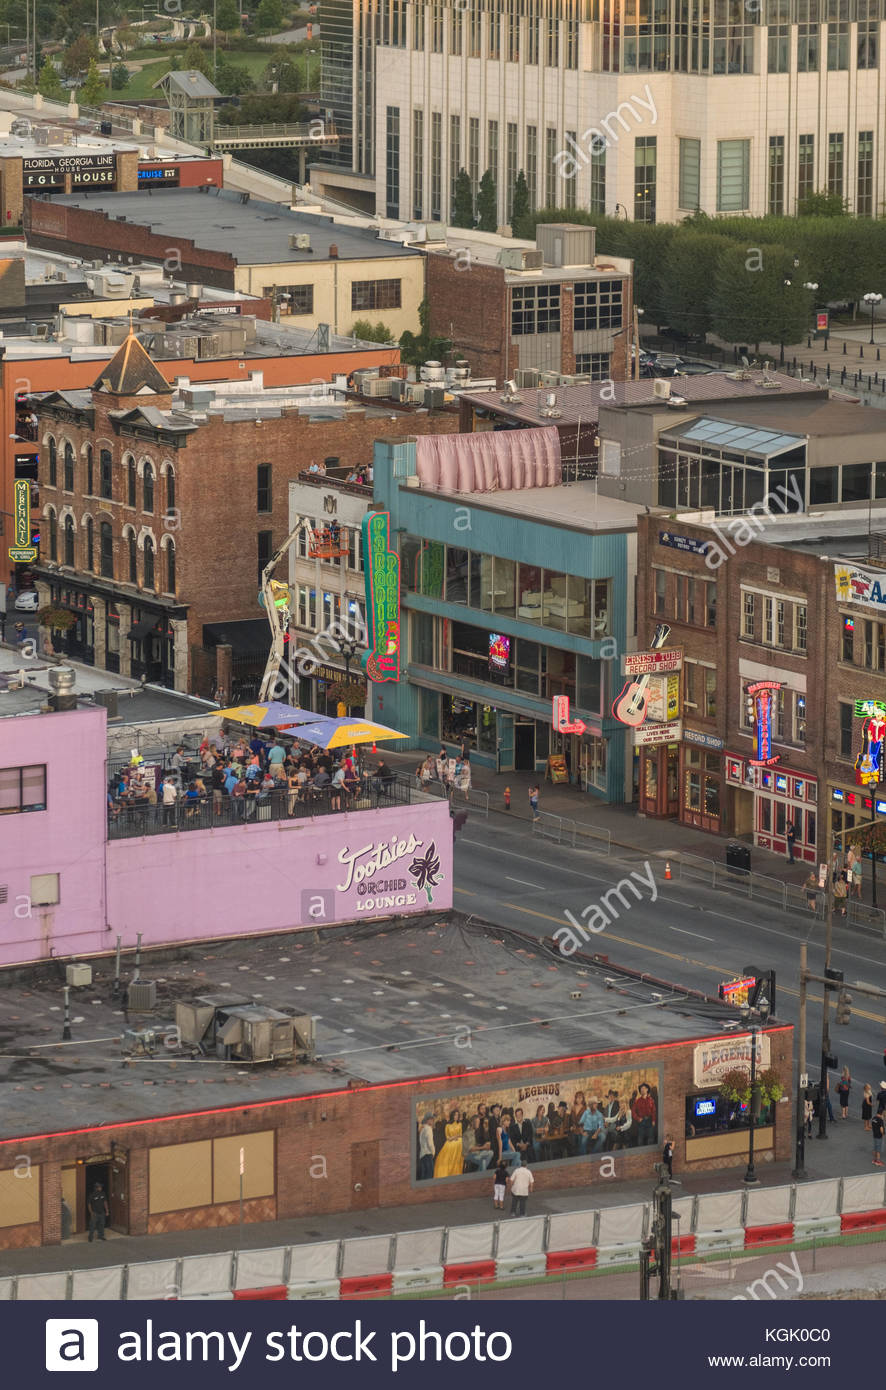 Aerial view of lower Broadway entertainment district with rooftop bars, restaurants and entertainment venues for - Stock Image